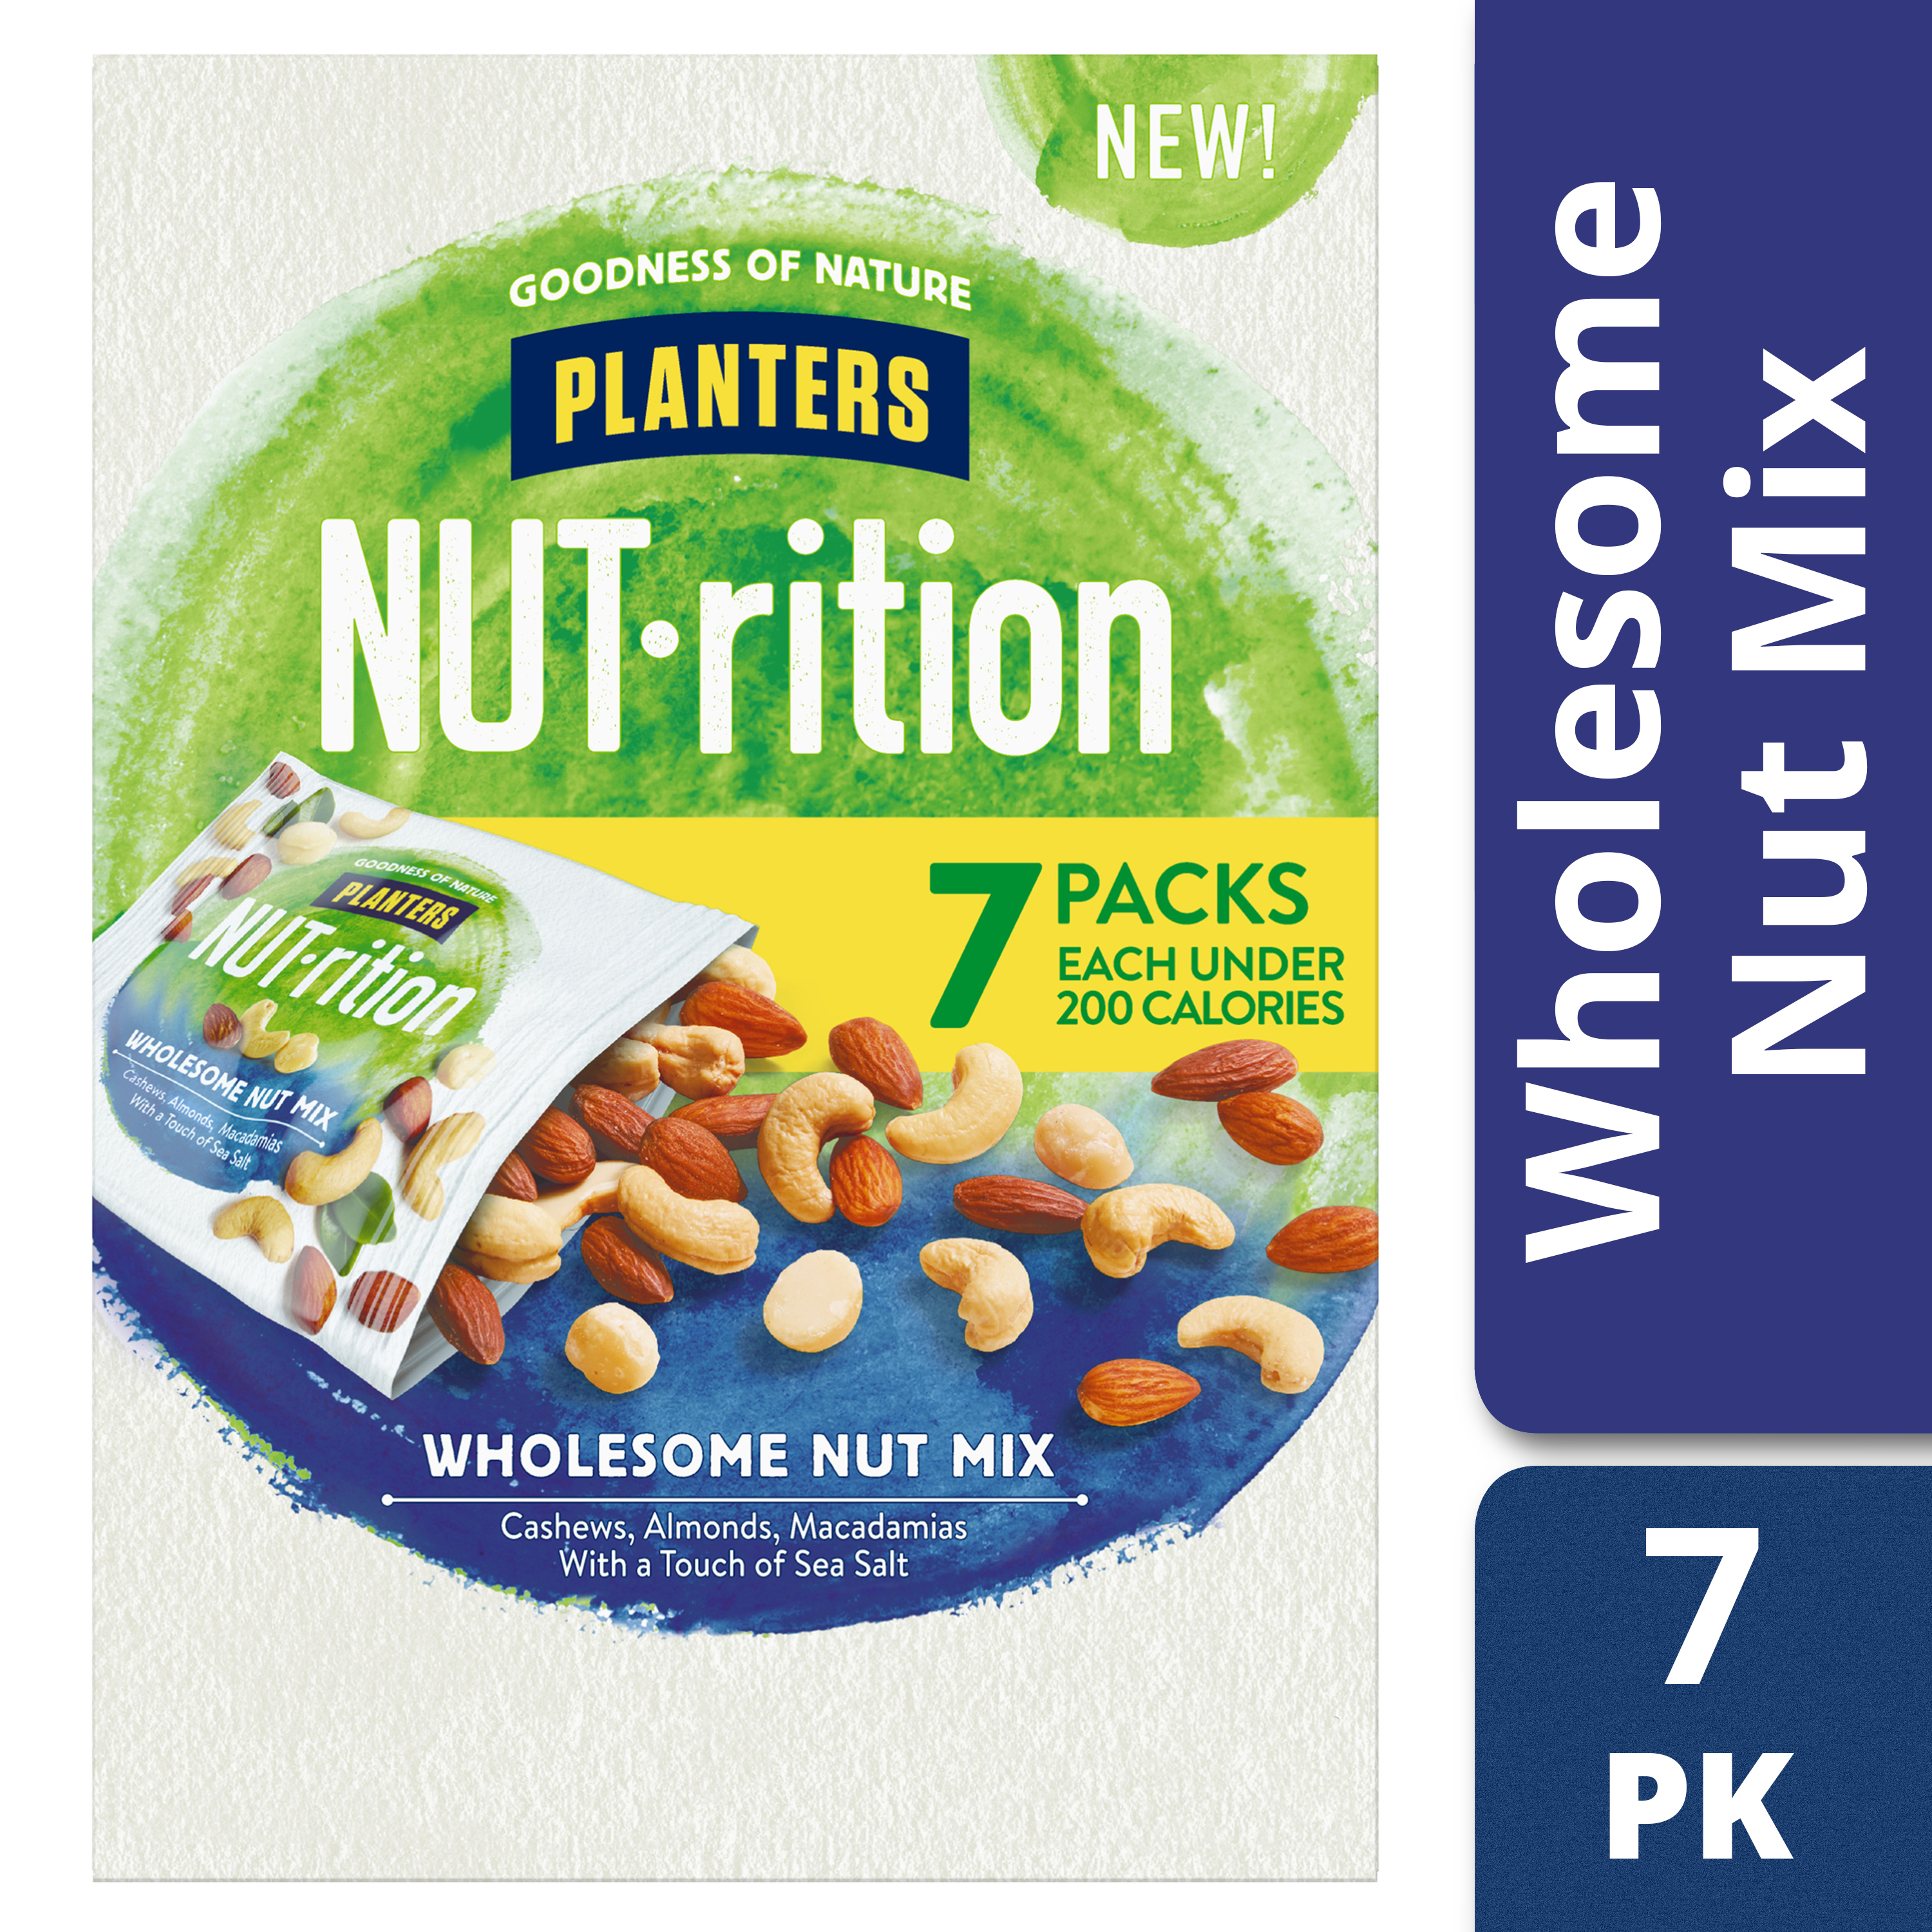 Planters NUT-rition Wholesome Nut Mix, 6 - 1.25 oz Bags